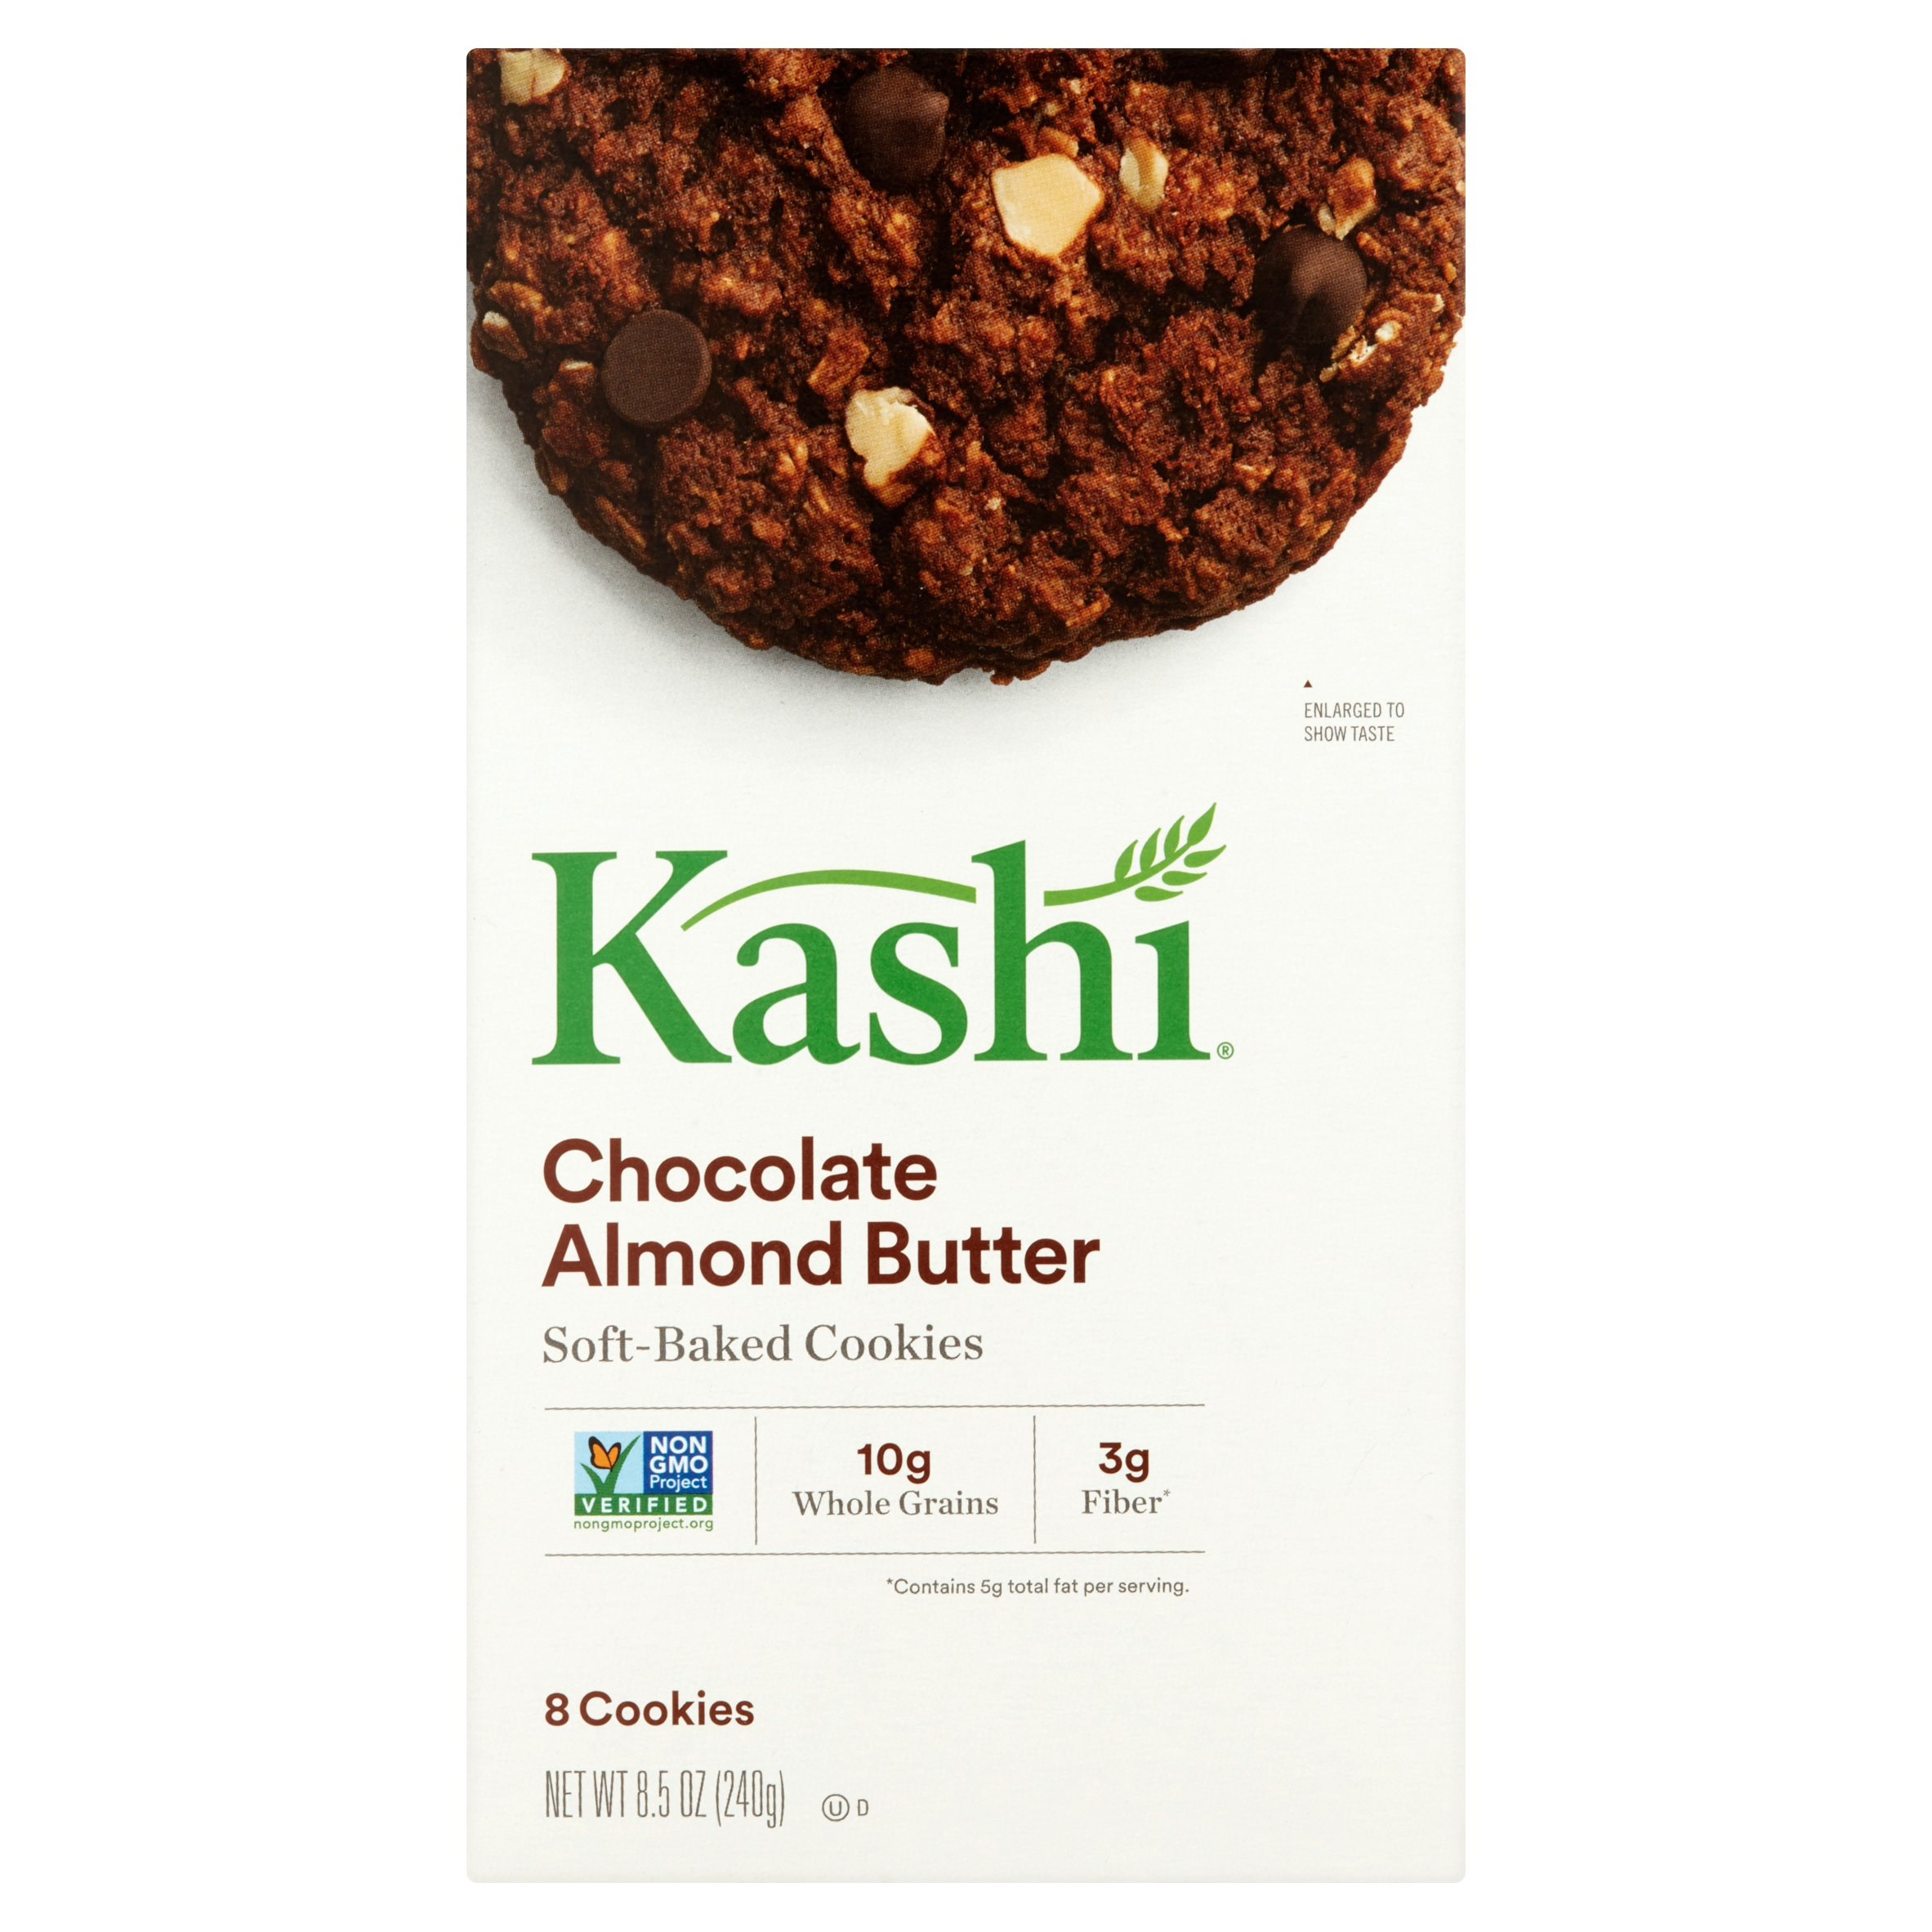 Kashi Chocolate Almond Butter Soft-Baked Cookies, 8.5 oz, 8 count, 6 pack